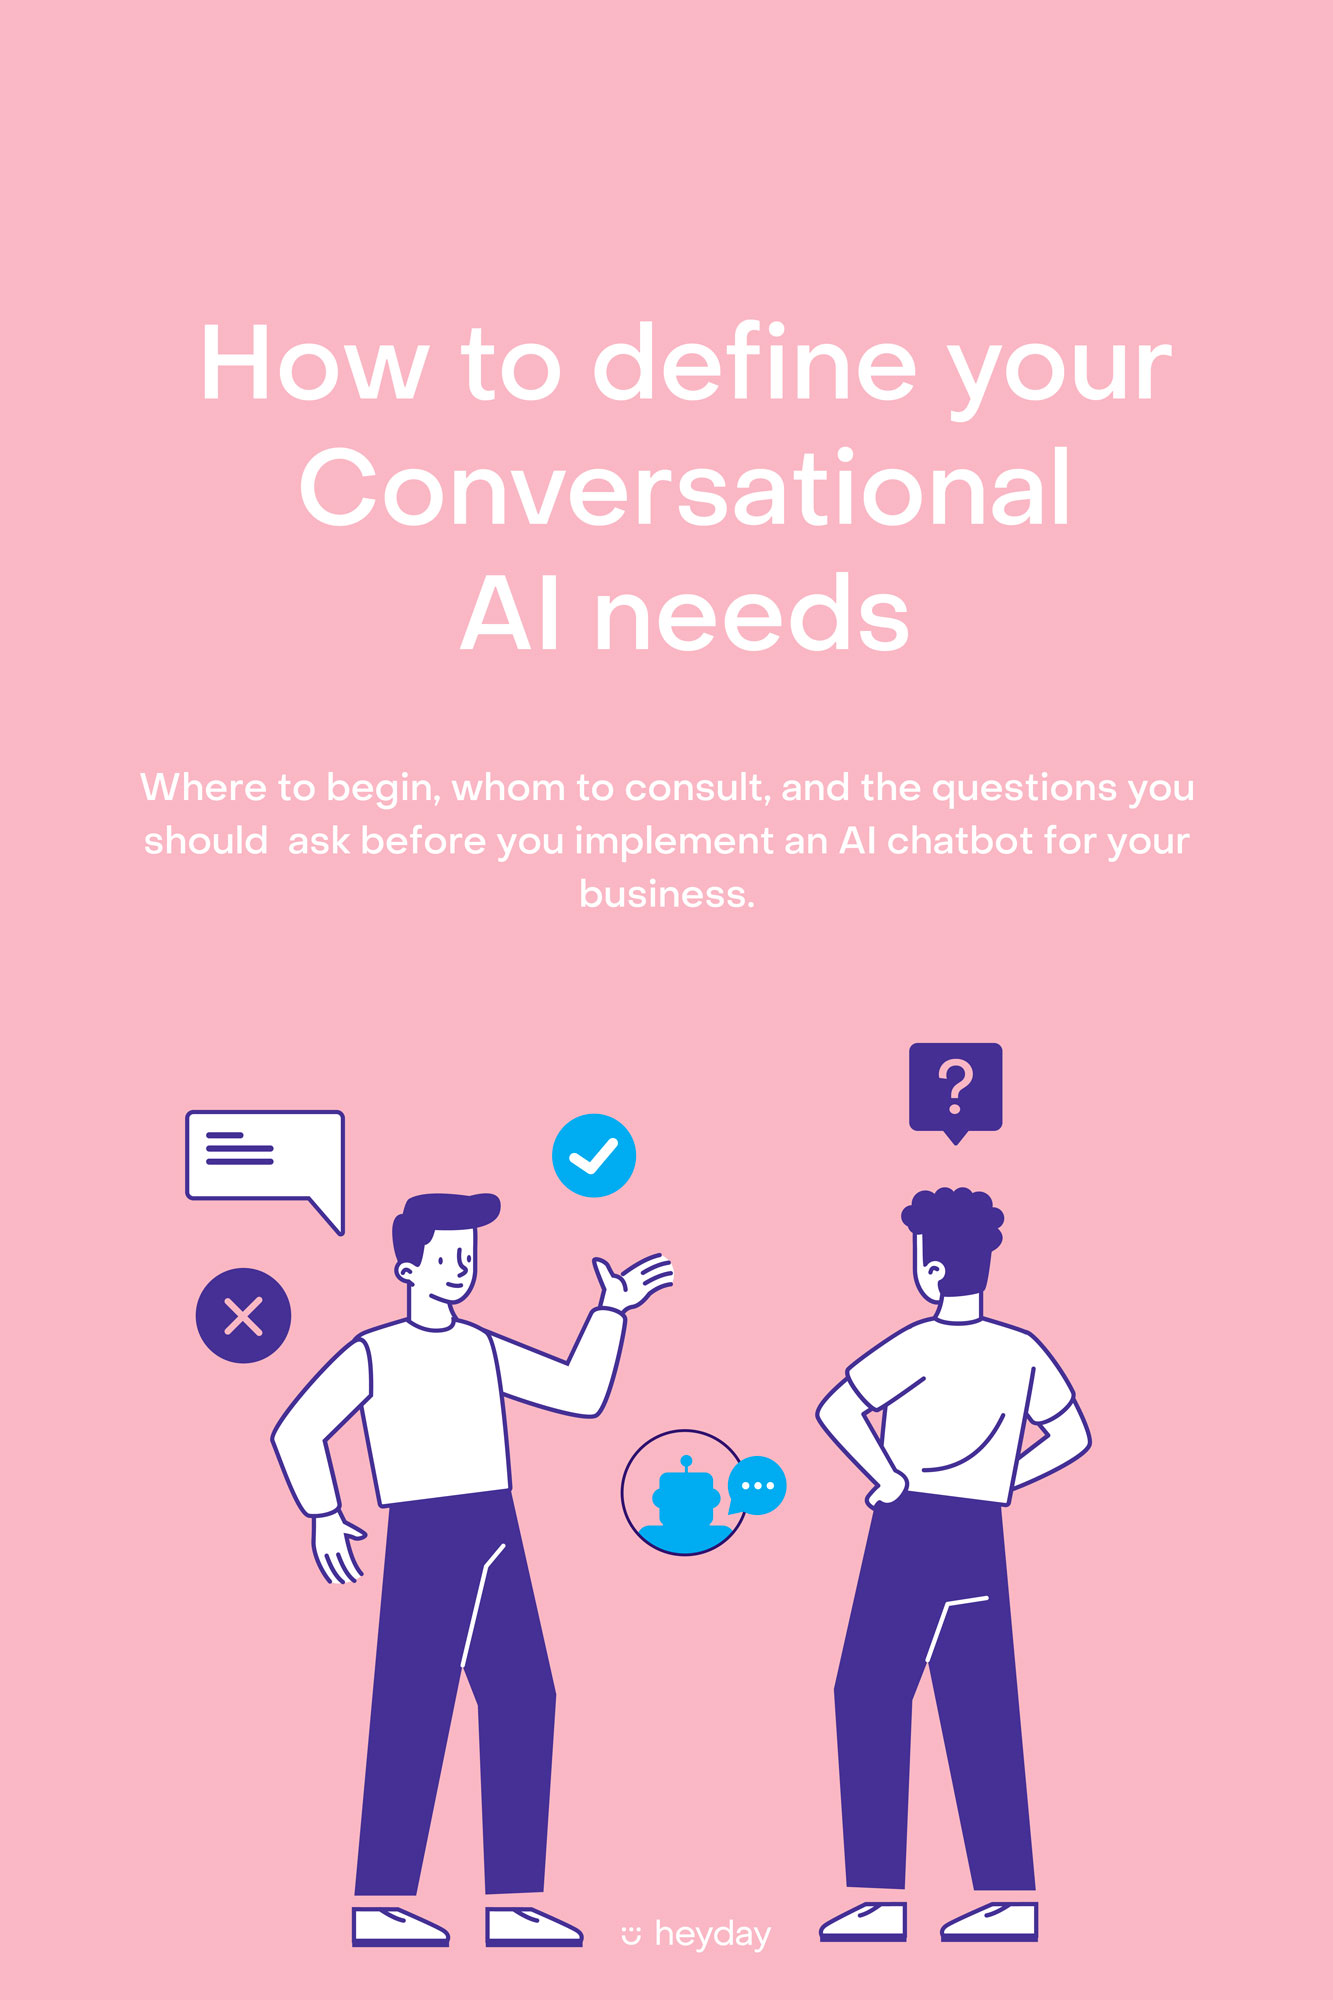 How to define your conversational AI needs